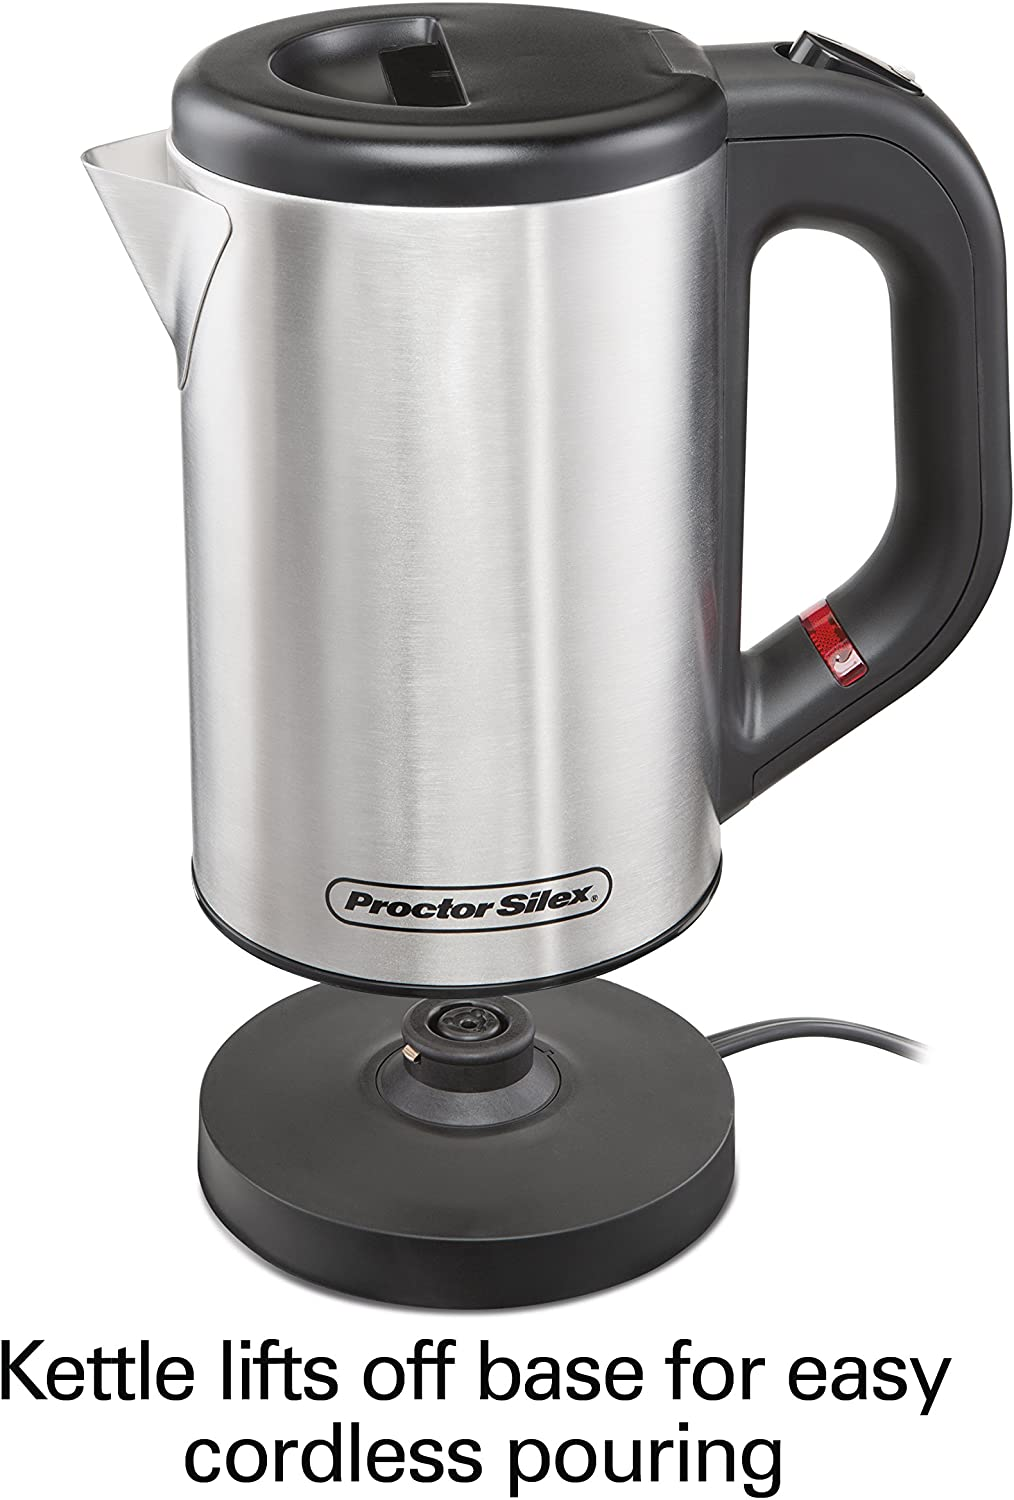 Proctor Silex 1 L. Electric Kettle